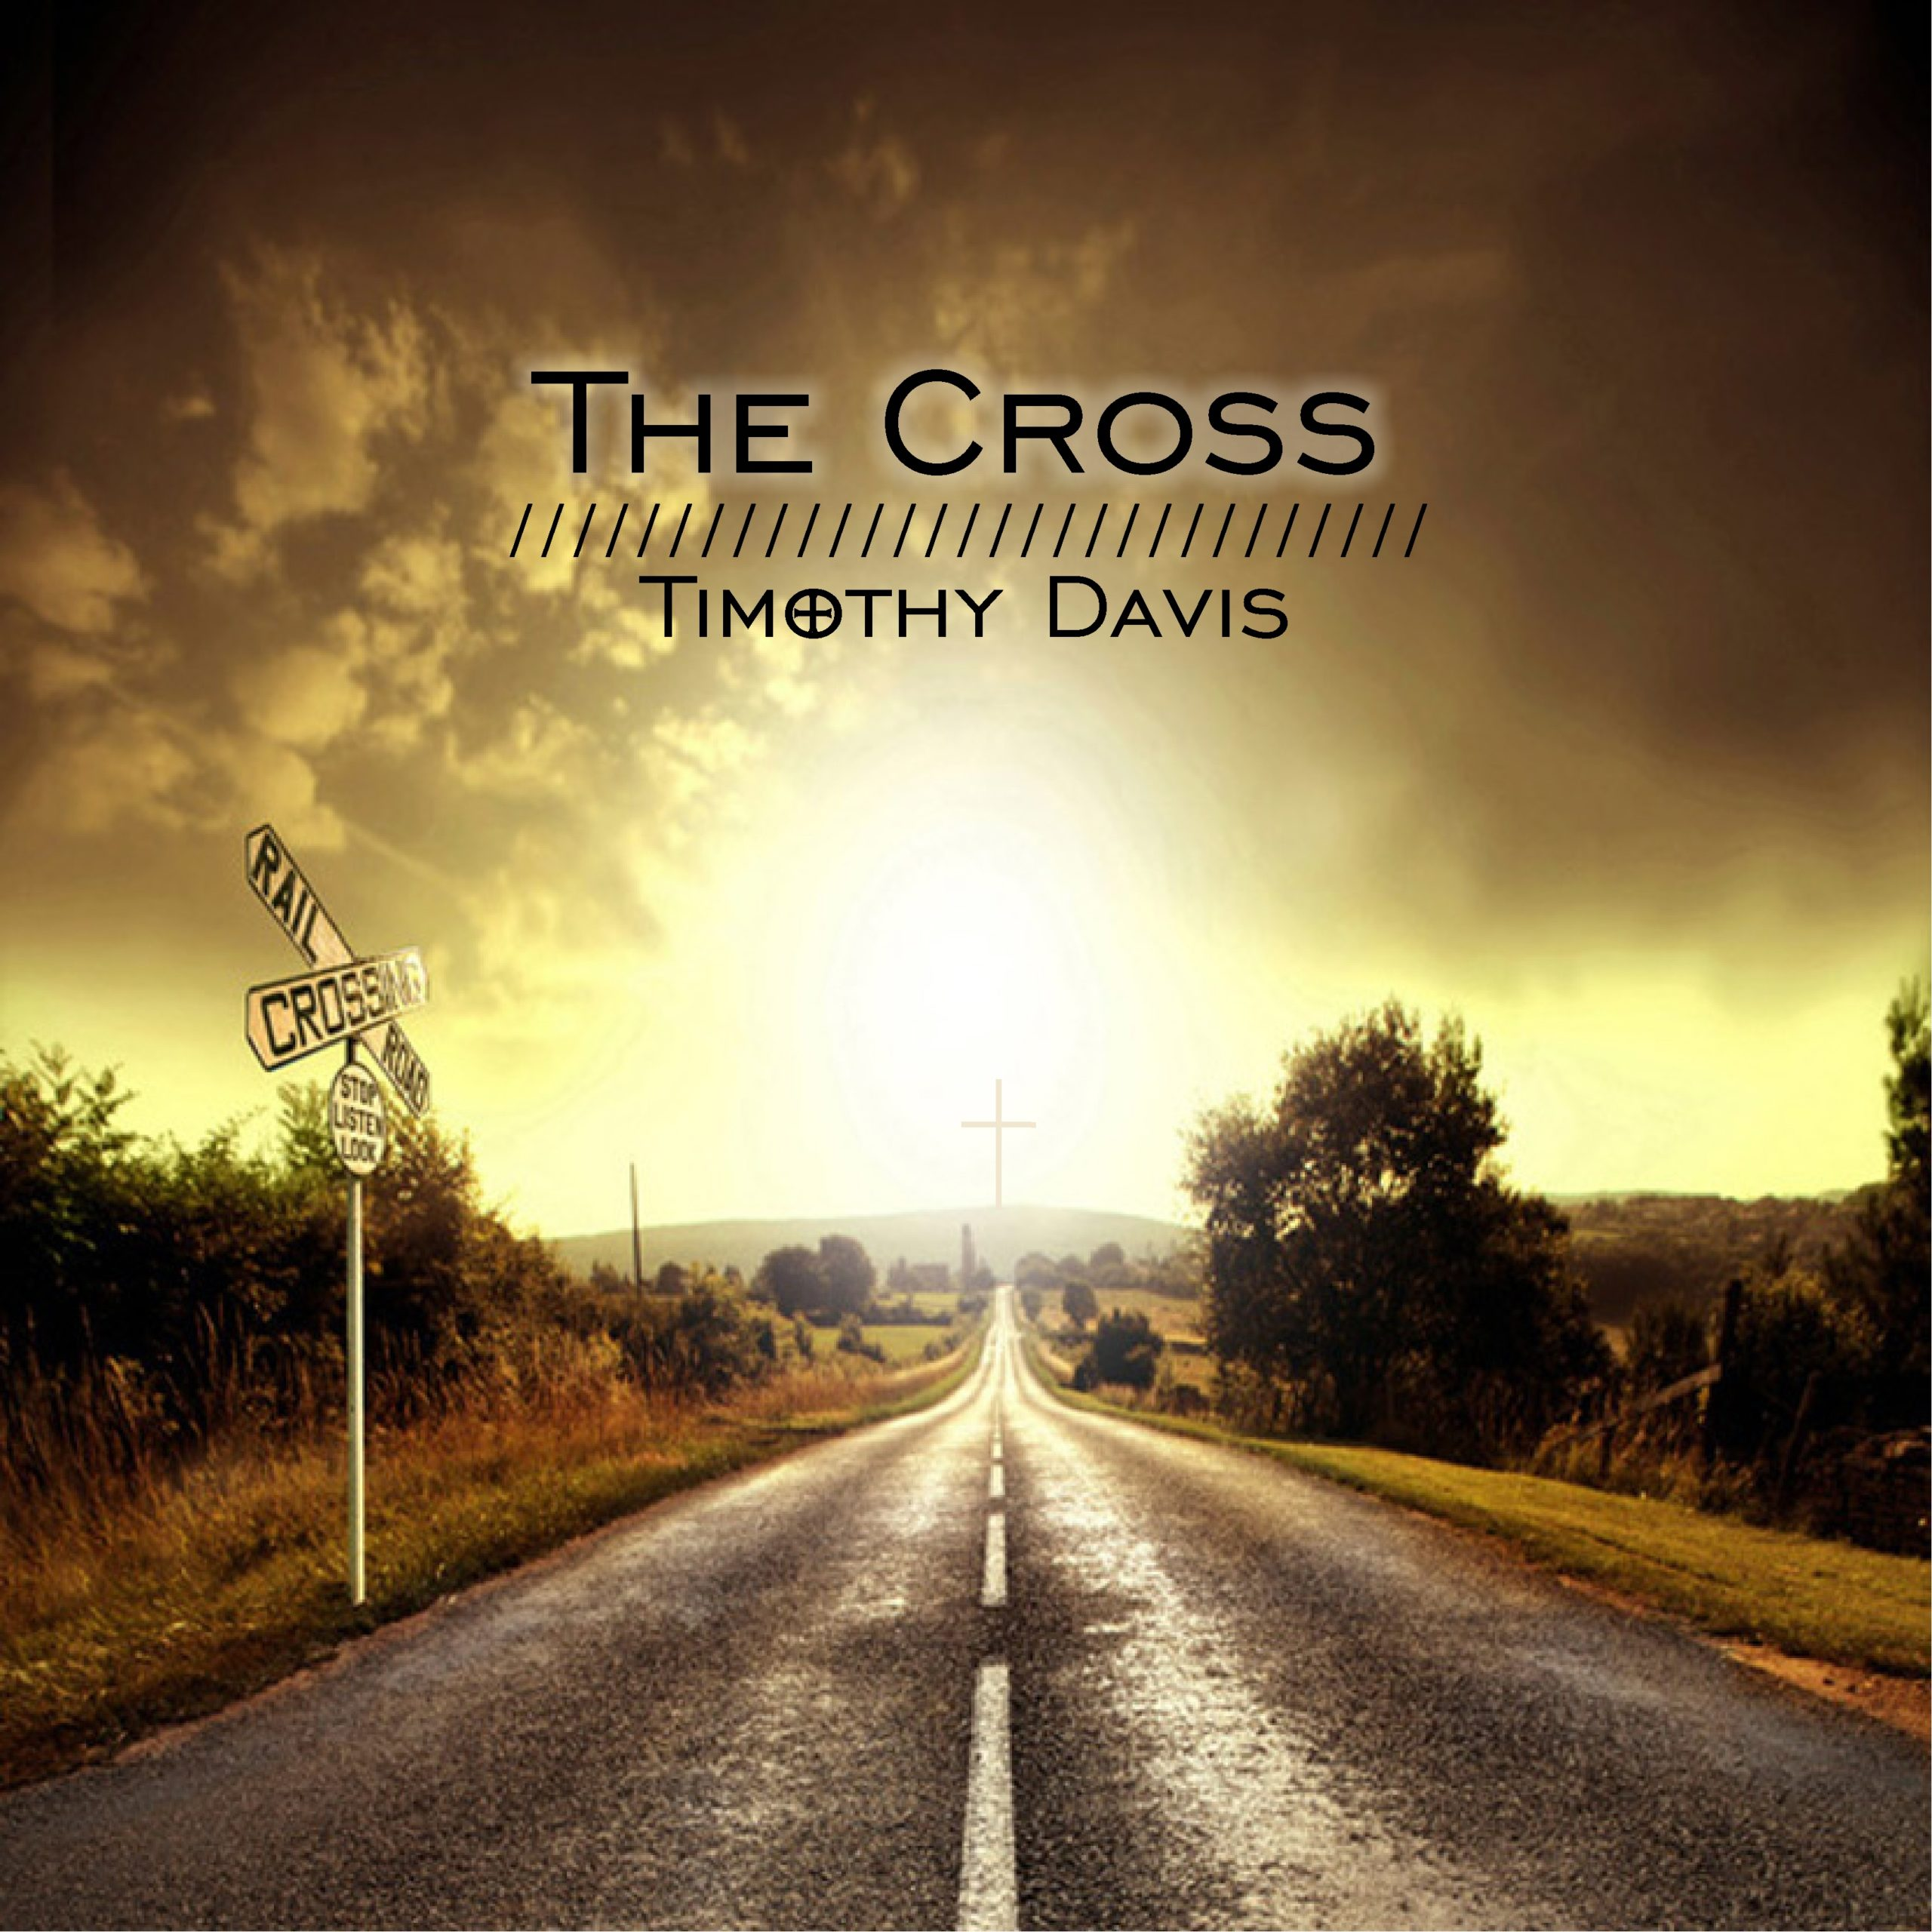 TIMOTHY DAVIS RELEASES NEW SINGLE TODAY